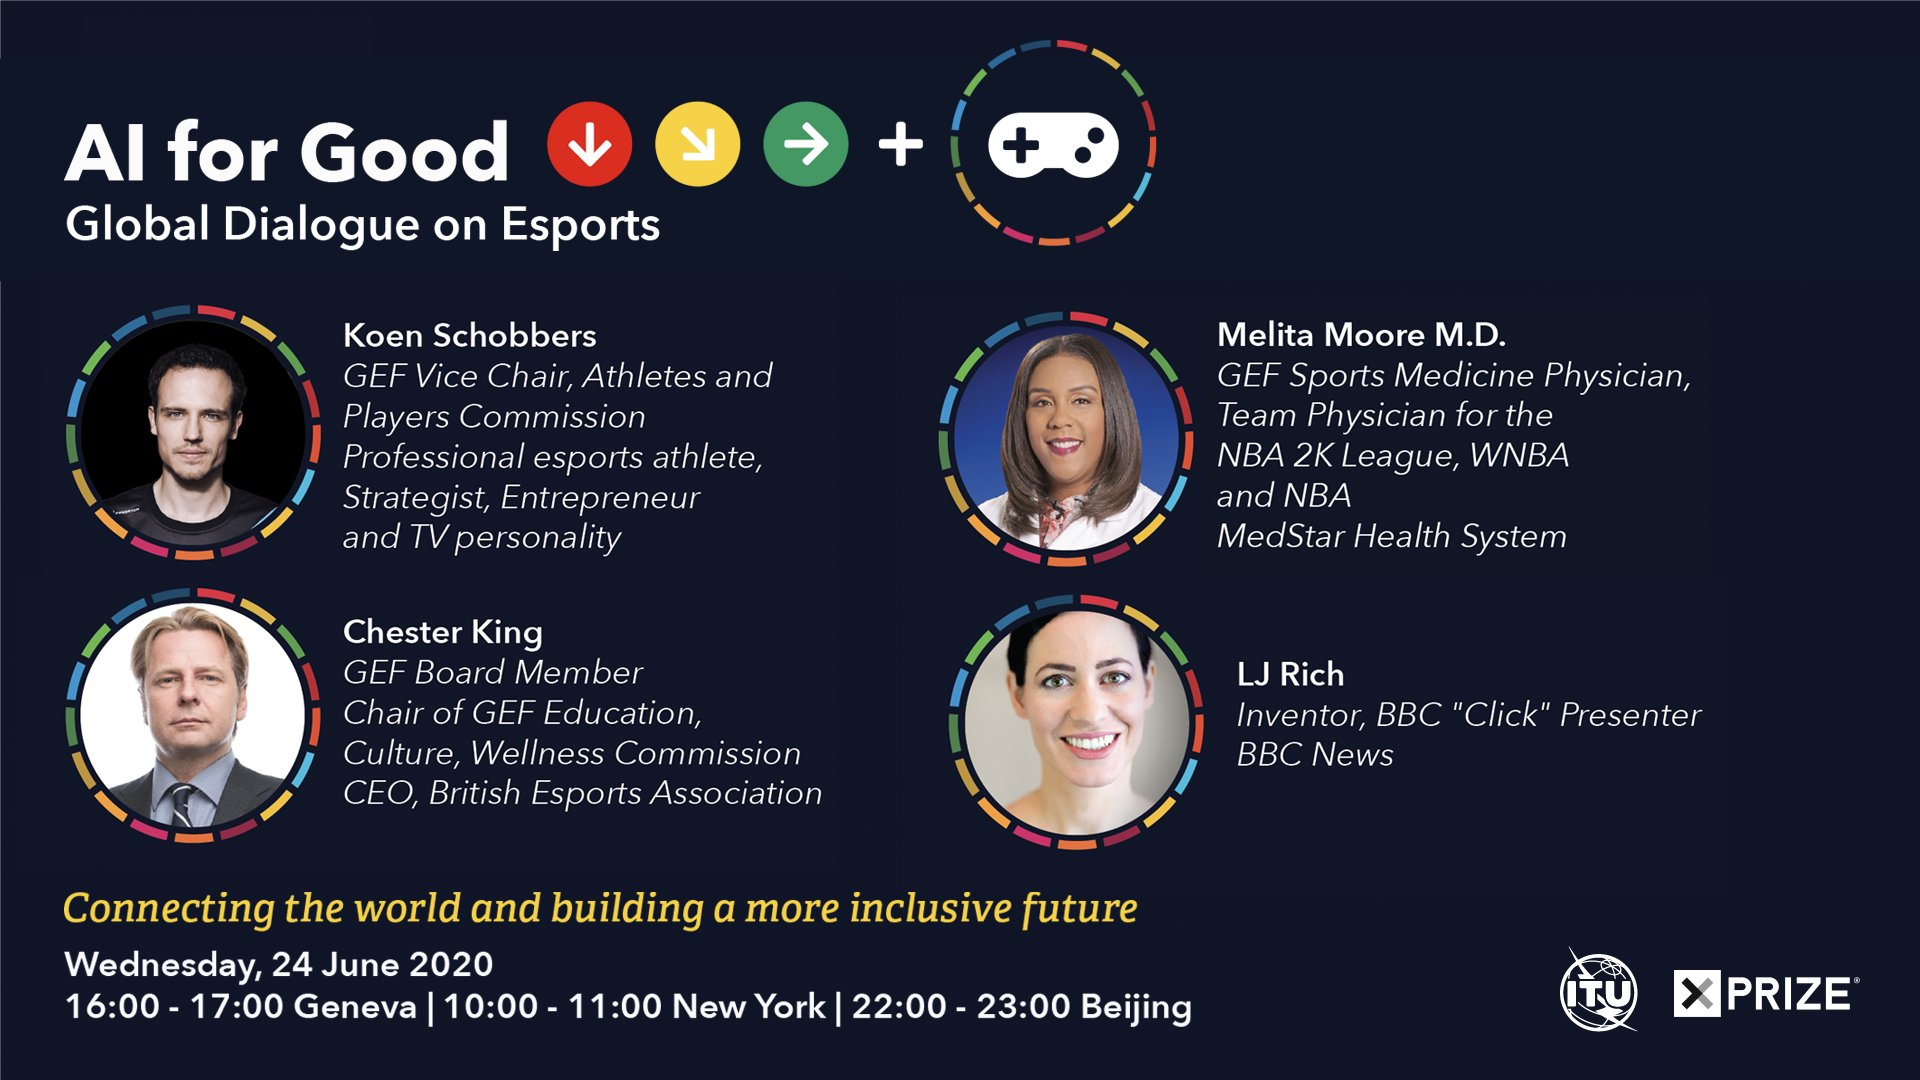 AI for Good esports Global Dialogue Webinar ITU.jpg